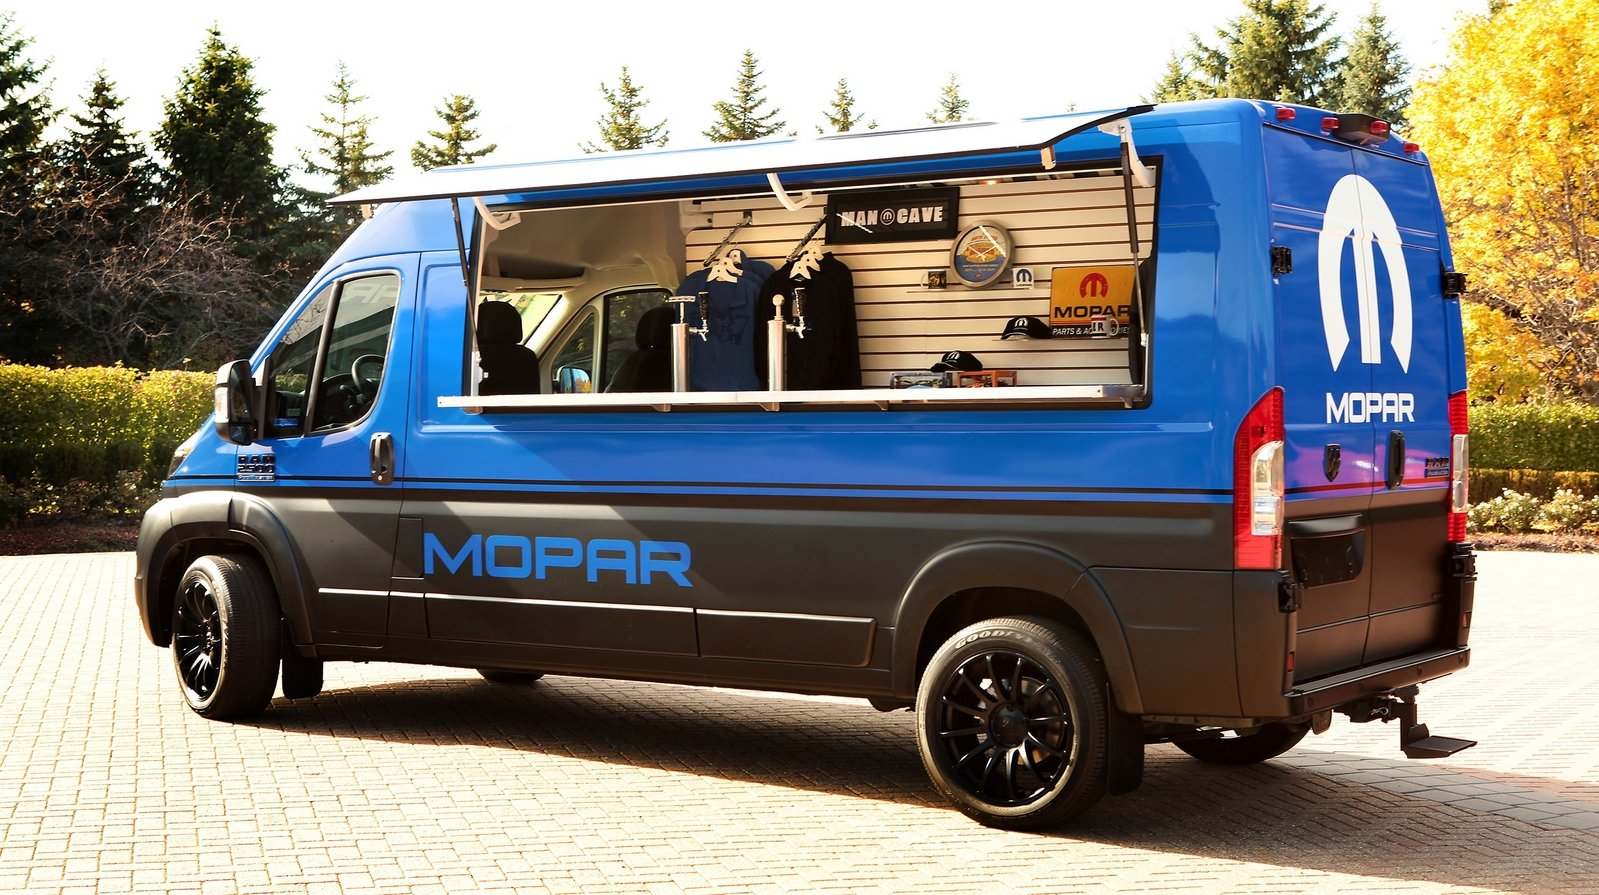 2015 ram promaster hospitality van review top speed. Black Bedroom Furniture Sets. Home Design Ideas